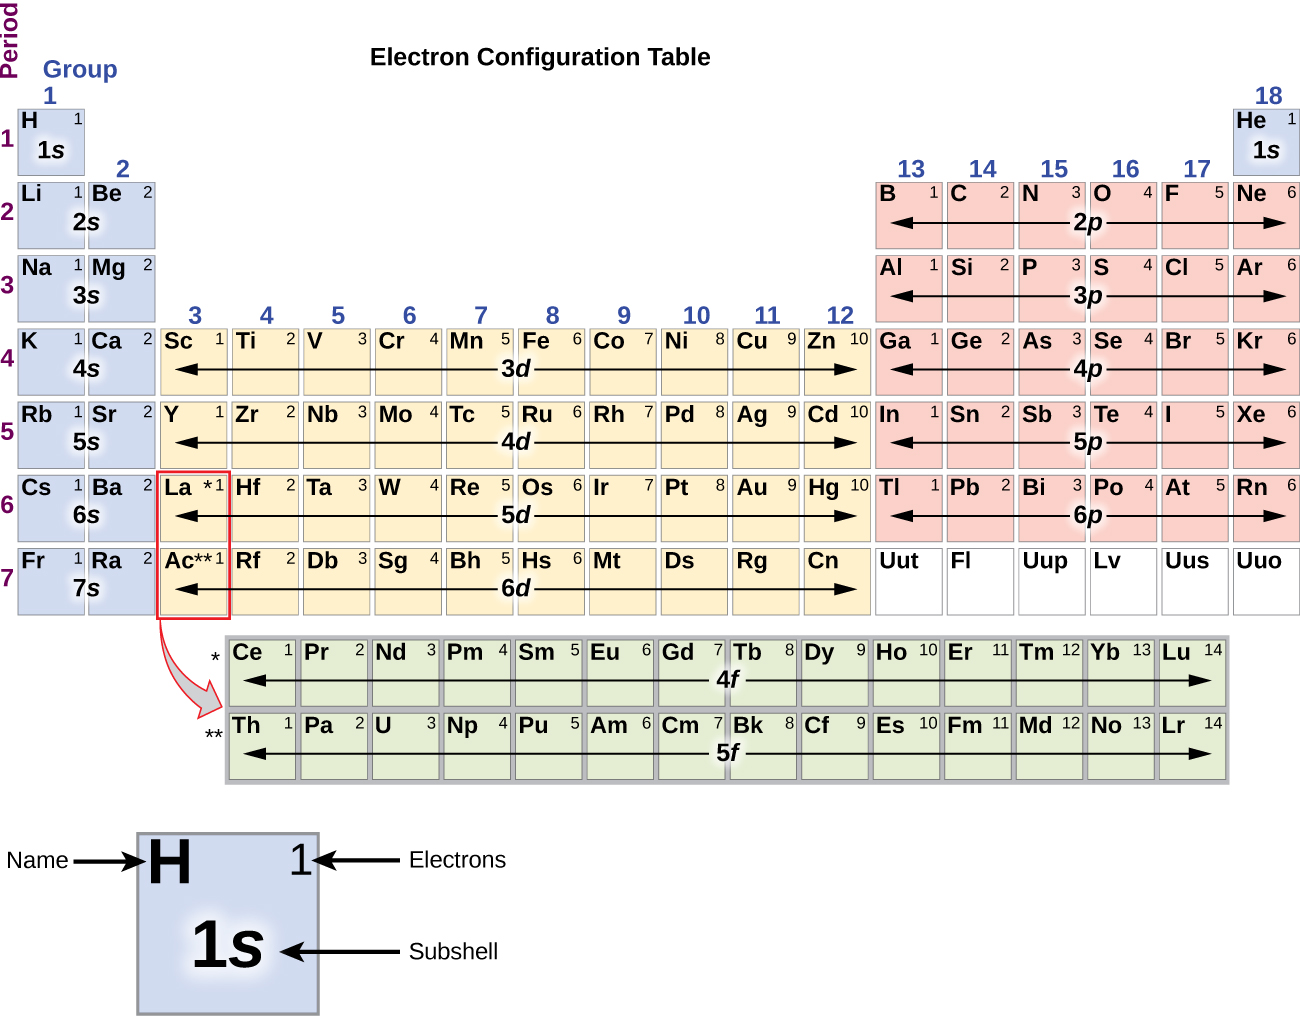 6 4 Electronic Structure of Atoms (Electron Configurations) – Chemistry